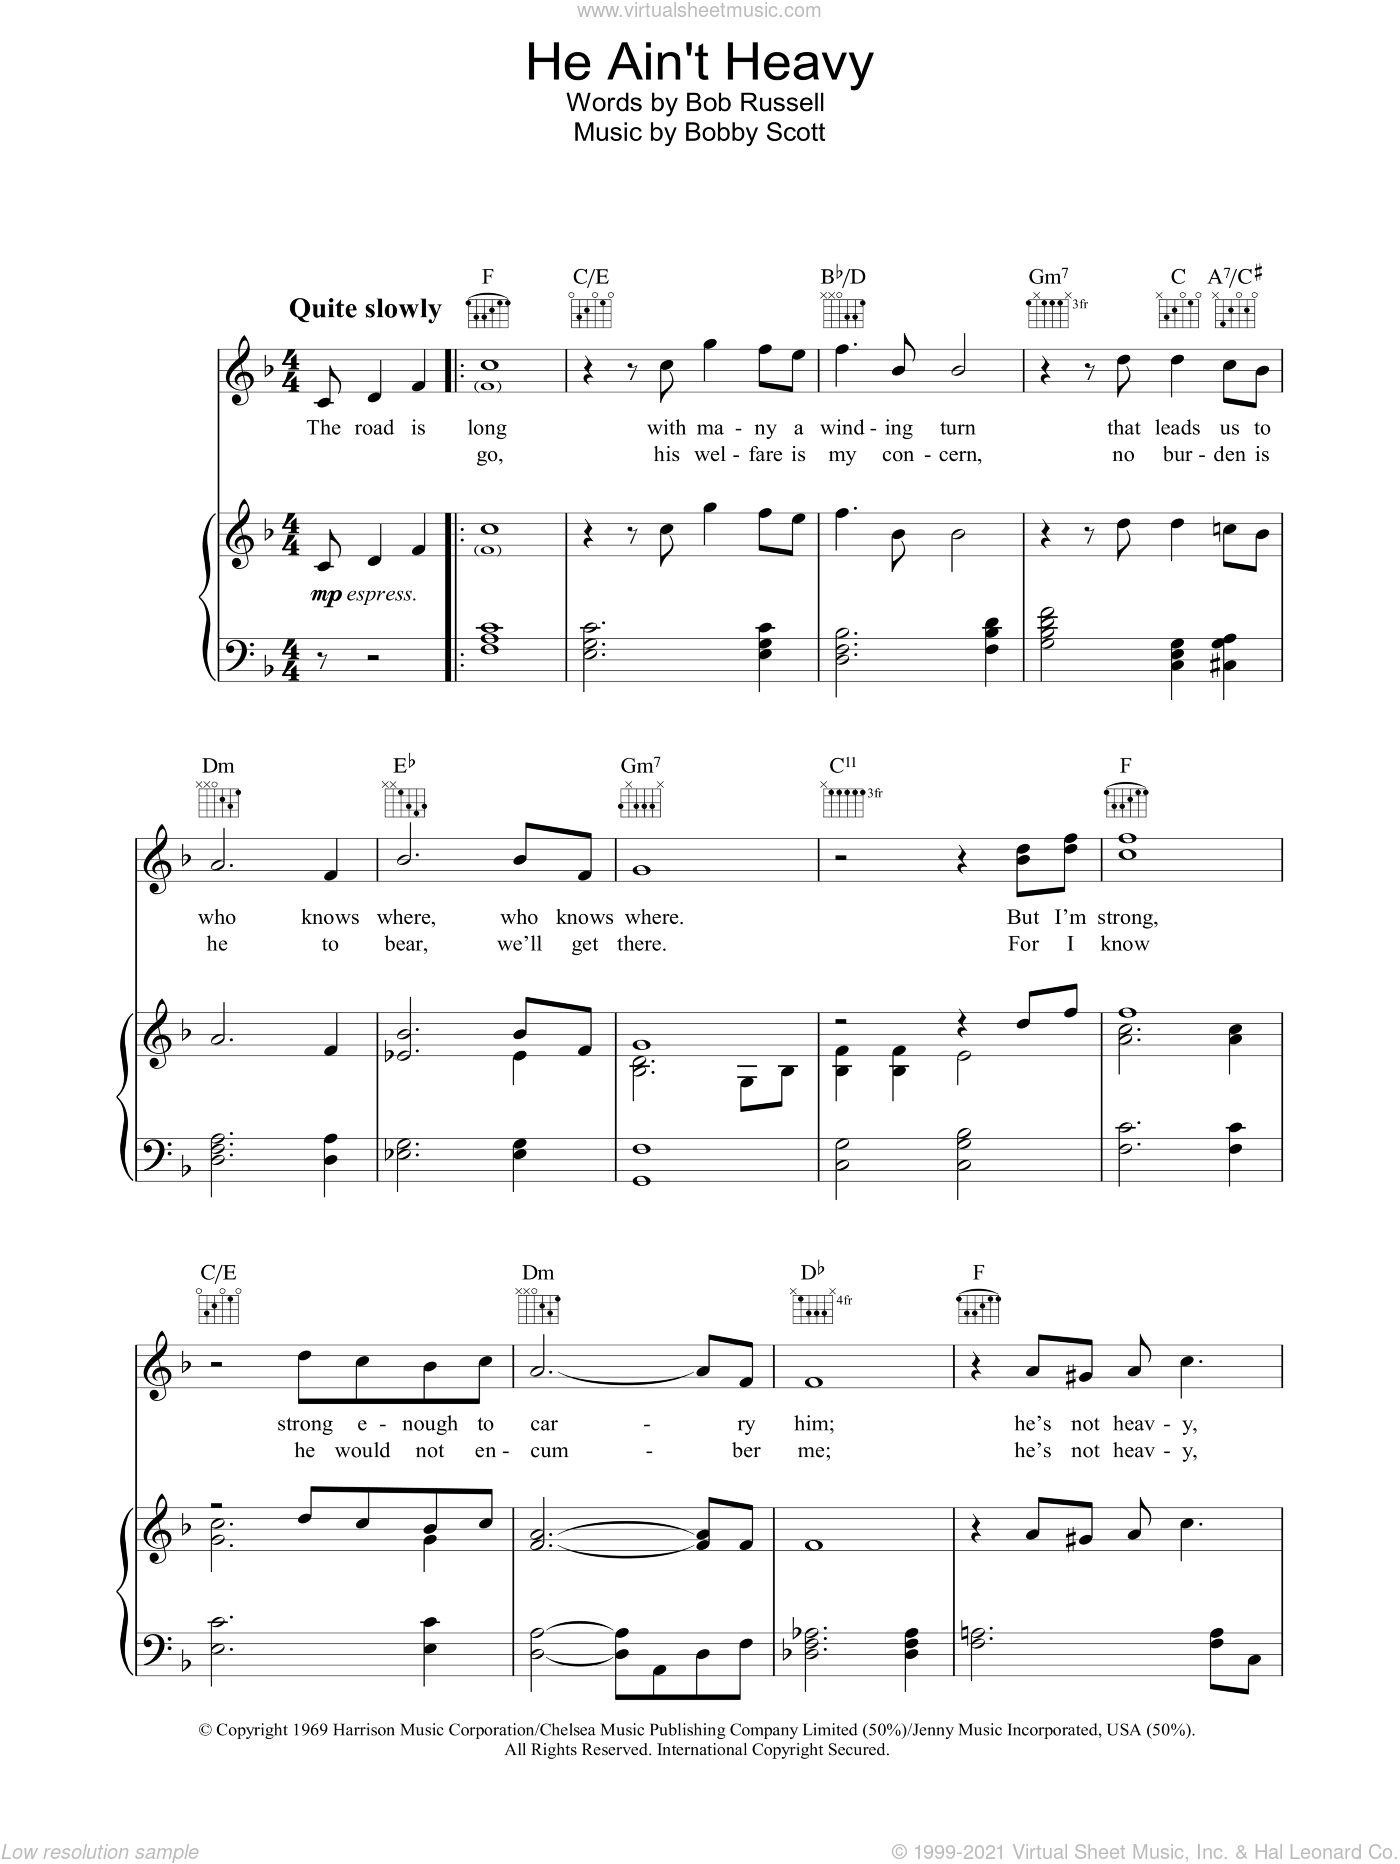 He Ain't Heavy, He's My Brother sheet music for voice, piano or guitar by The Choirboys, Neil Diamond, The Hollies, Bob Russell and Bobby Scott, intermediate skill level